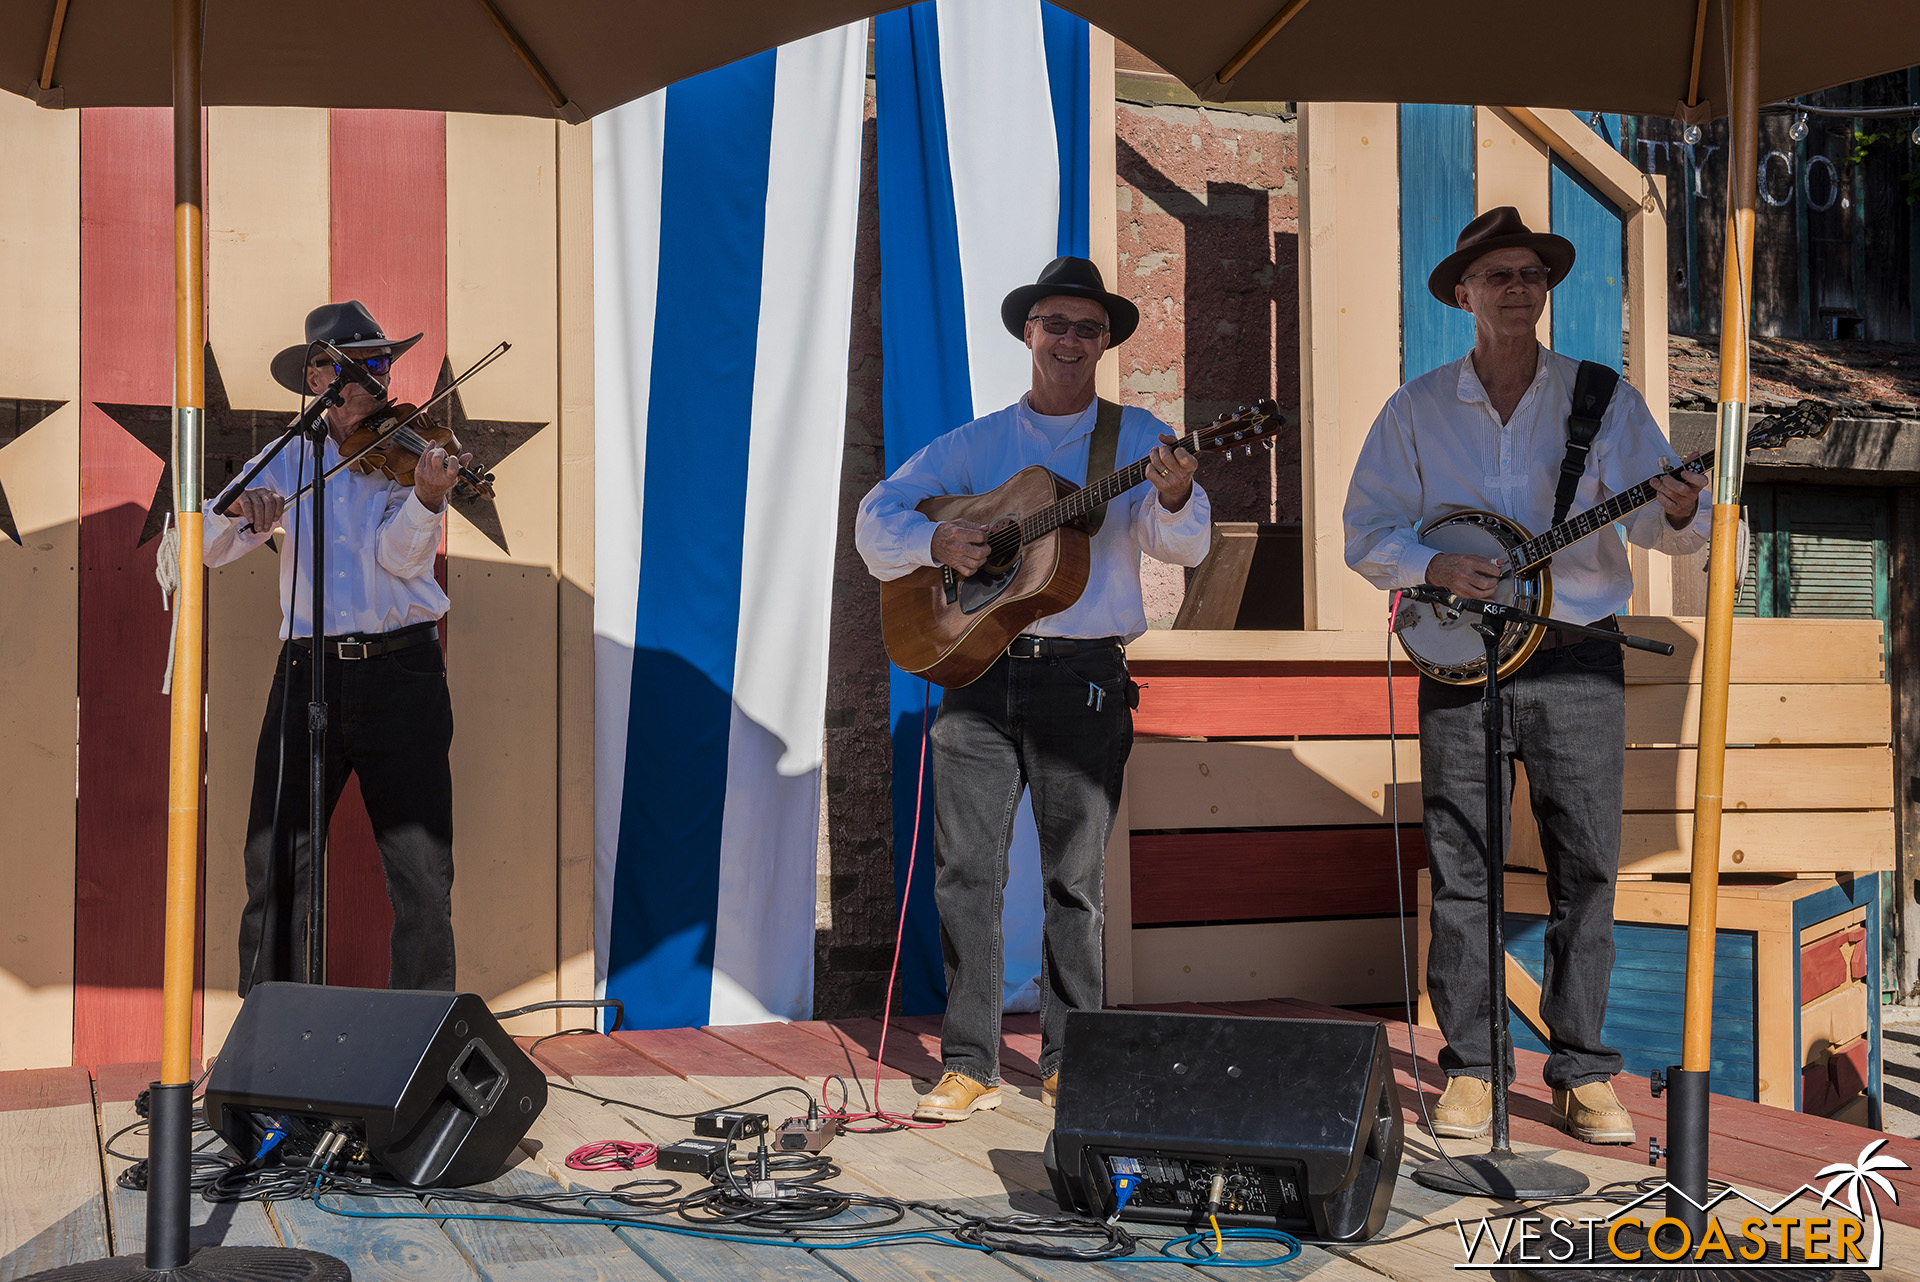 There's live music once again for the Hoedown.